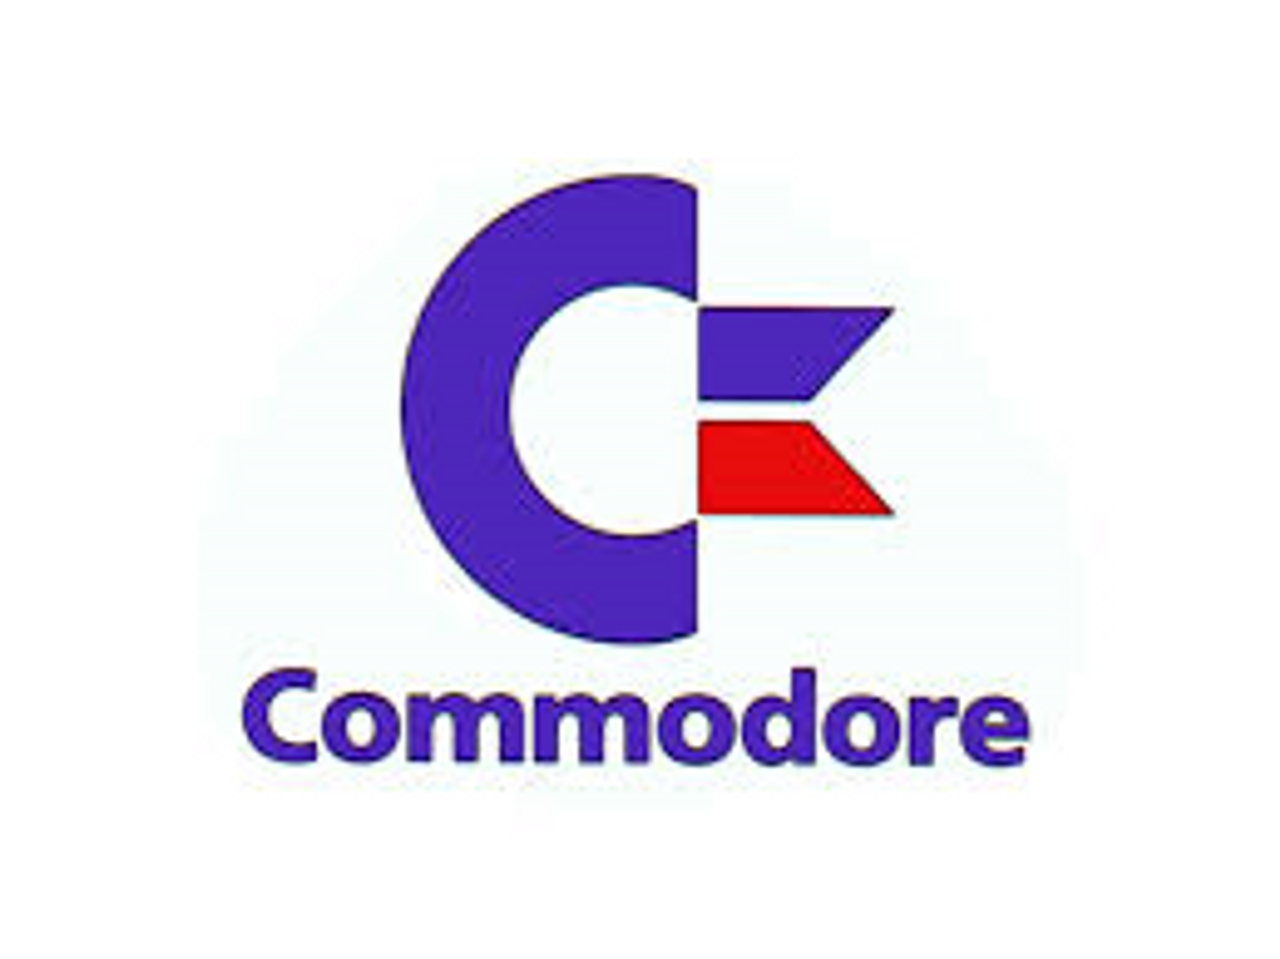 Commodore Games And Software